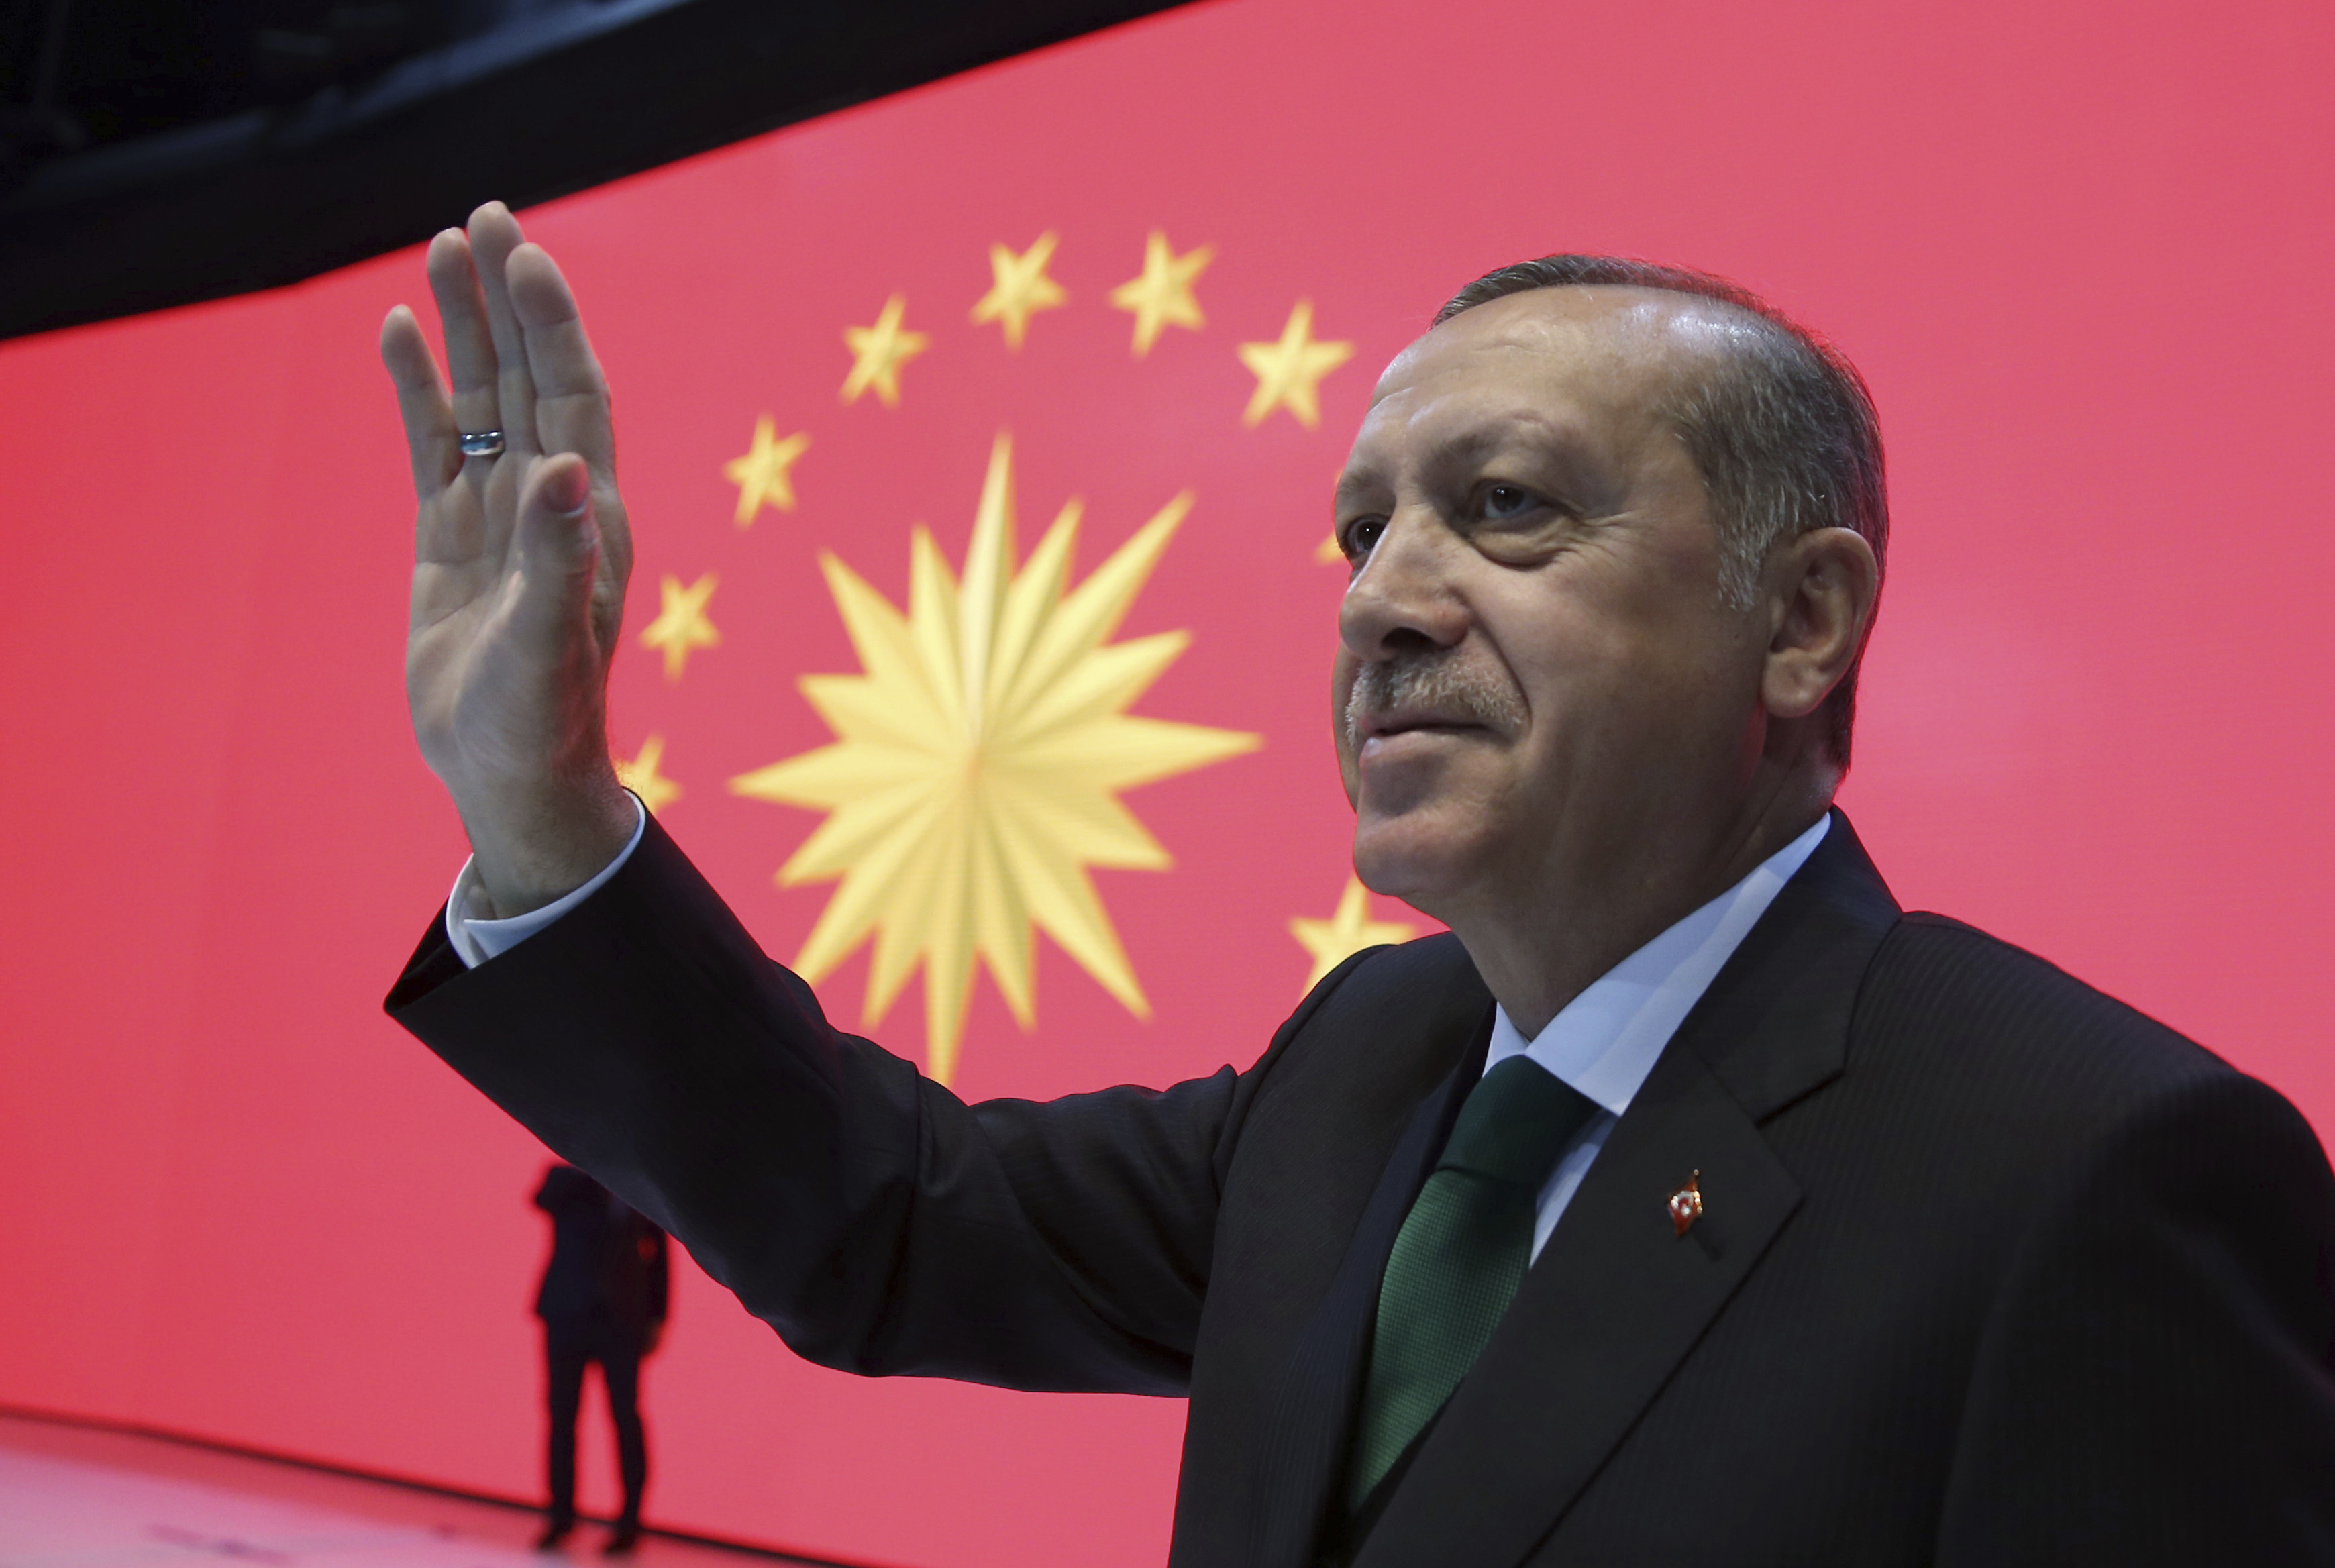 Turkey President Recep Tayyip Erdogan waves to his supporters during a meeting in Istanbul, March 27, 2017. Turkey hold a referendum on April 16 on whether to expand the powers of the Turkish presidency.